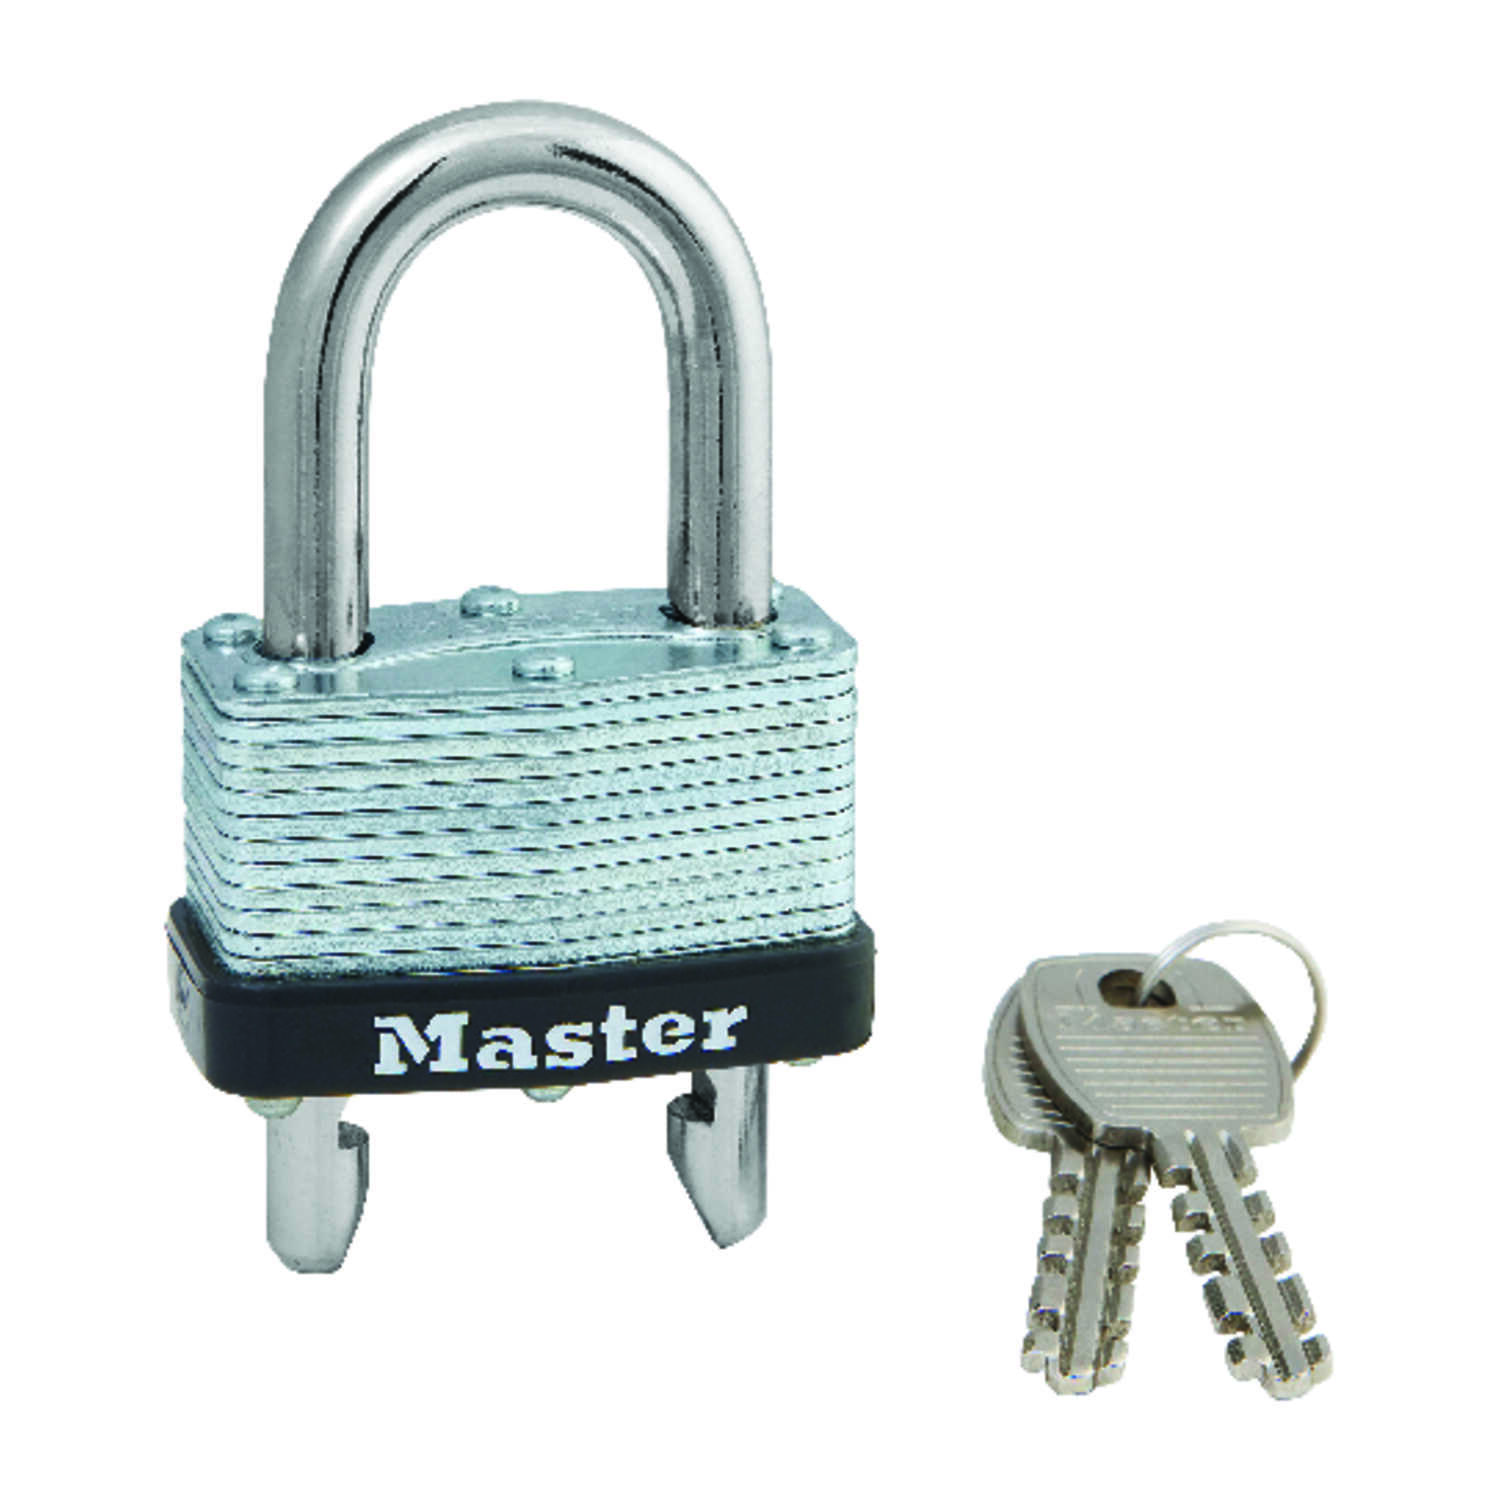 Master Lock  1-3/32 in. H x 1-1/32 in. W x 1-3/4 in. L Laminated Steel  Warded Locking  Padlock  1 e